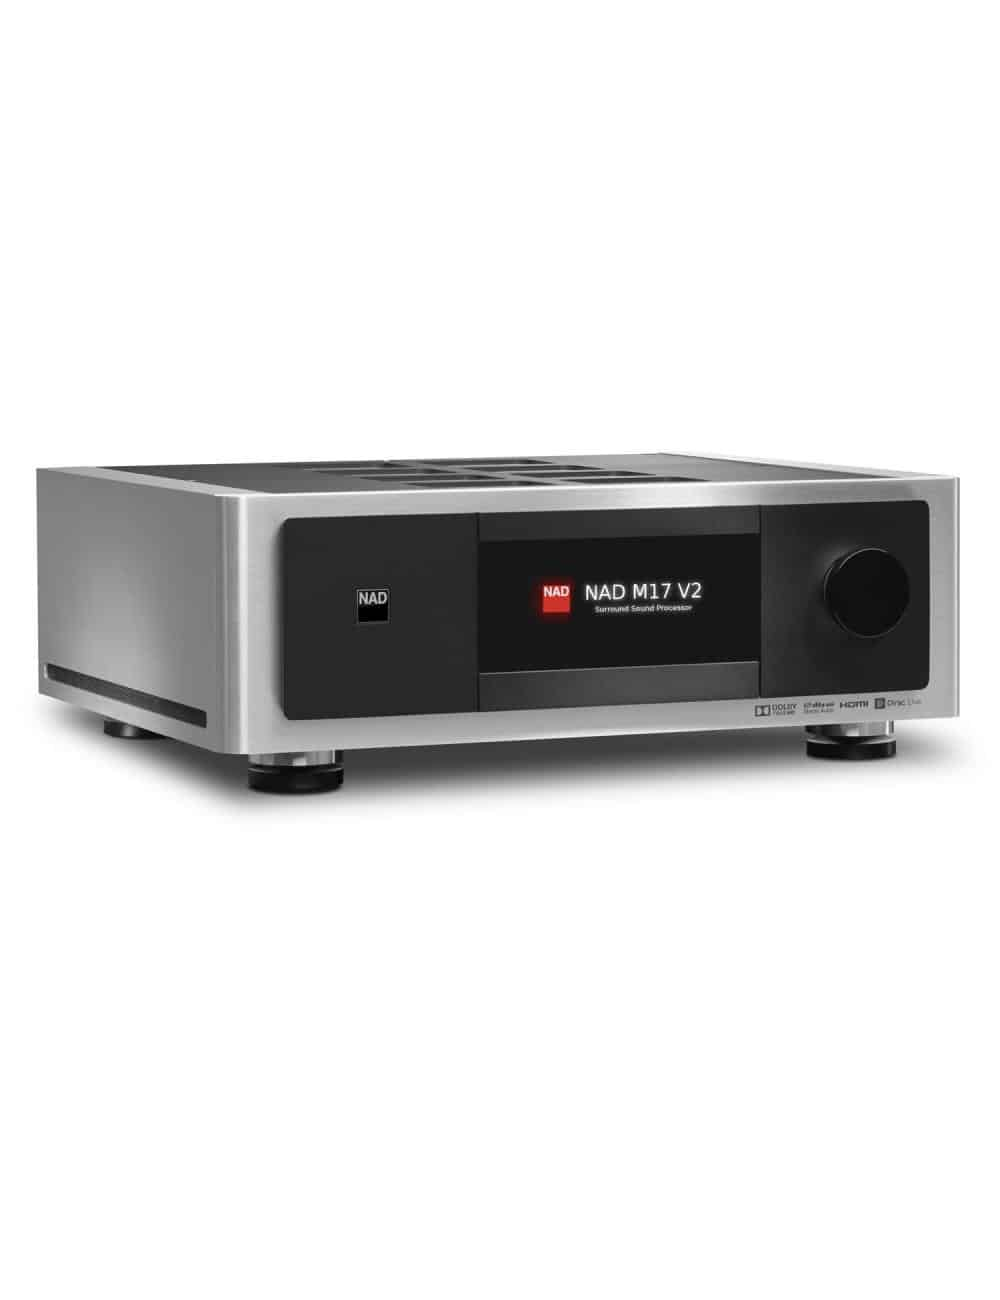 preamplificatore audio video multicanale, NAD M17 v2, serie Masters, vista frontale